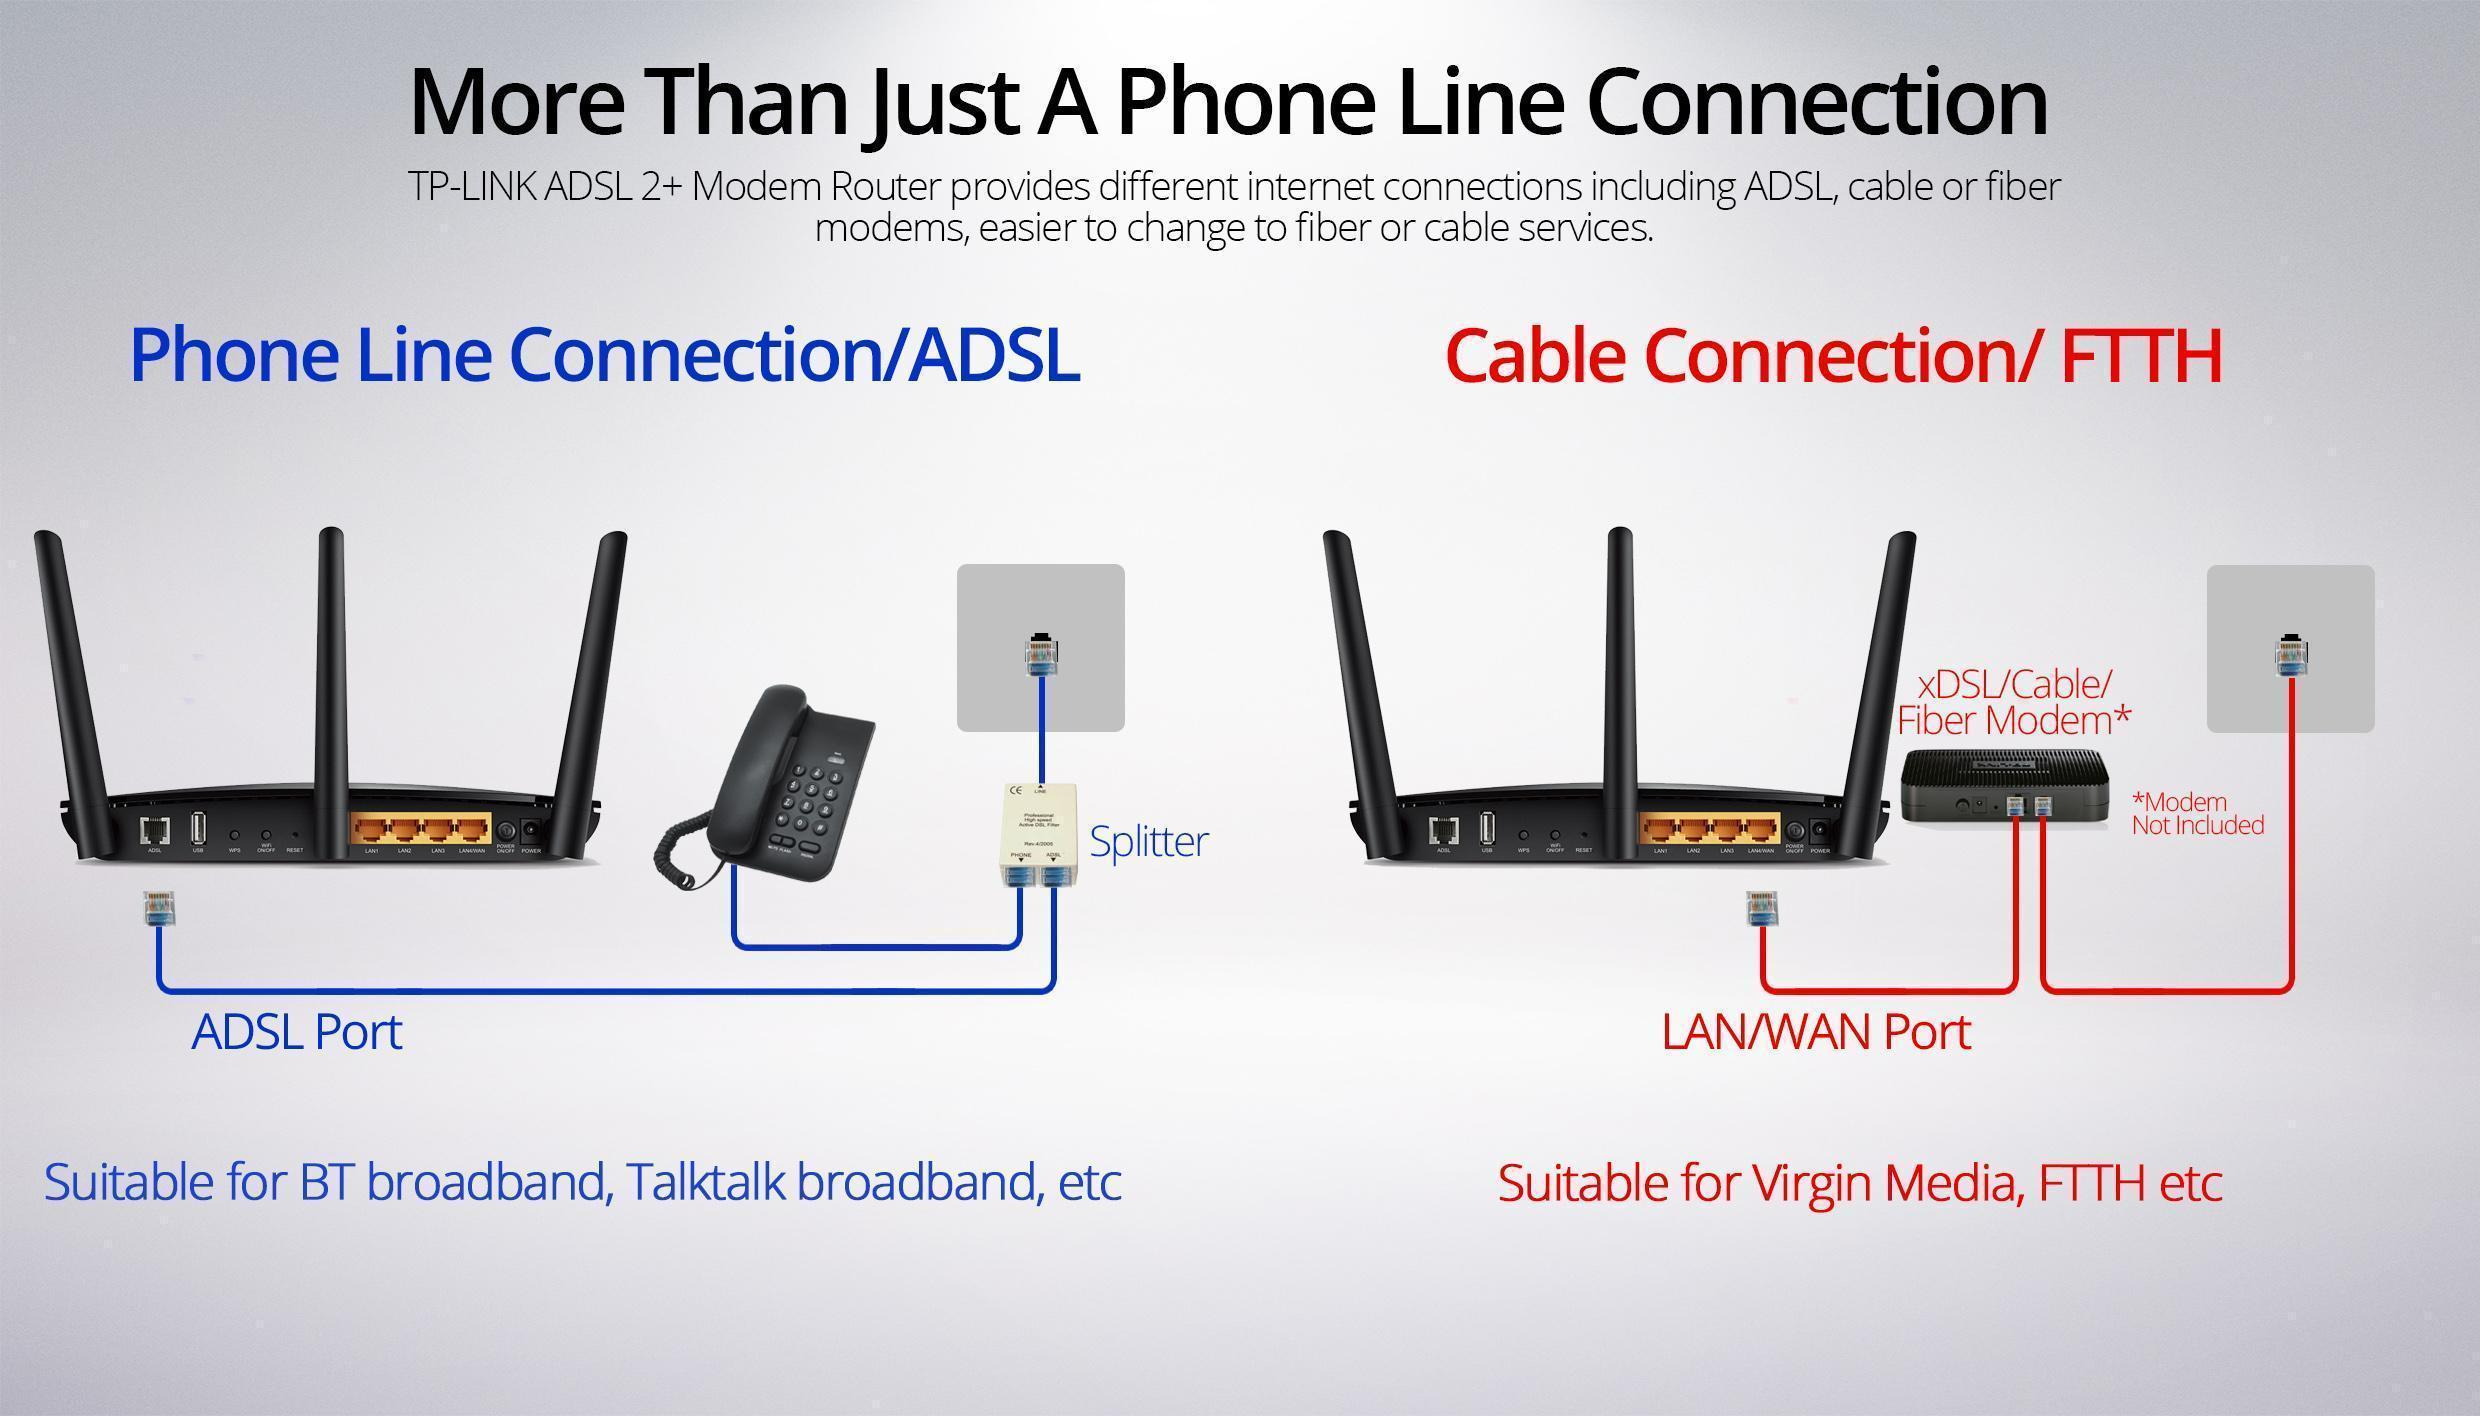 For router setup, please follow the normal setup process to connect to your  ADSL or Cable modem or any other devices allow you to go to Internet.